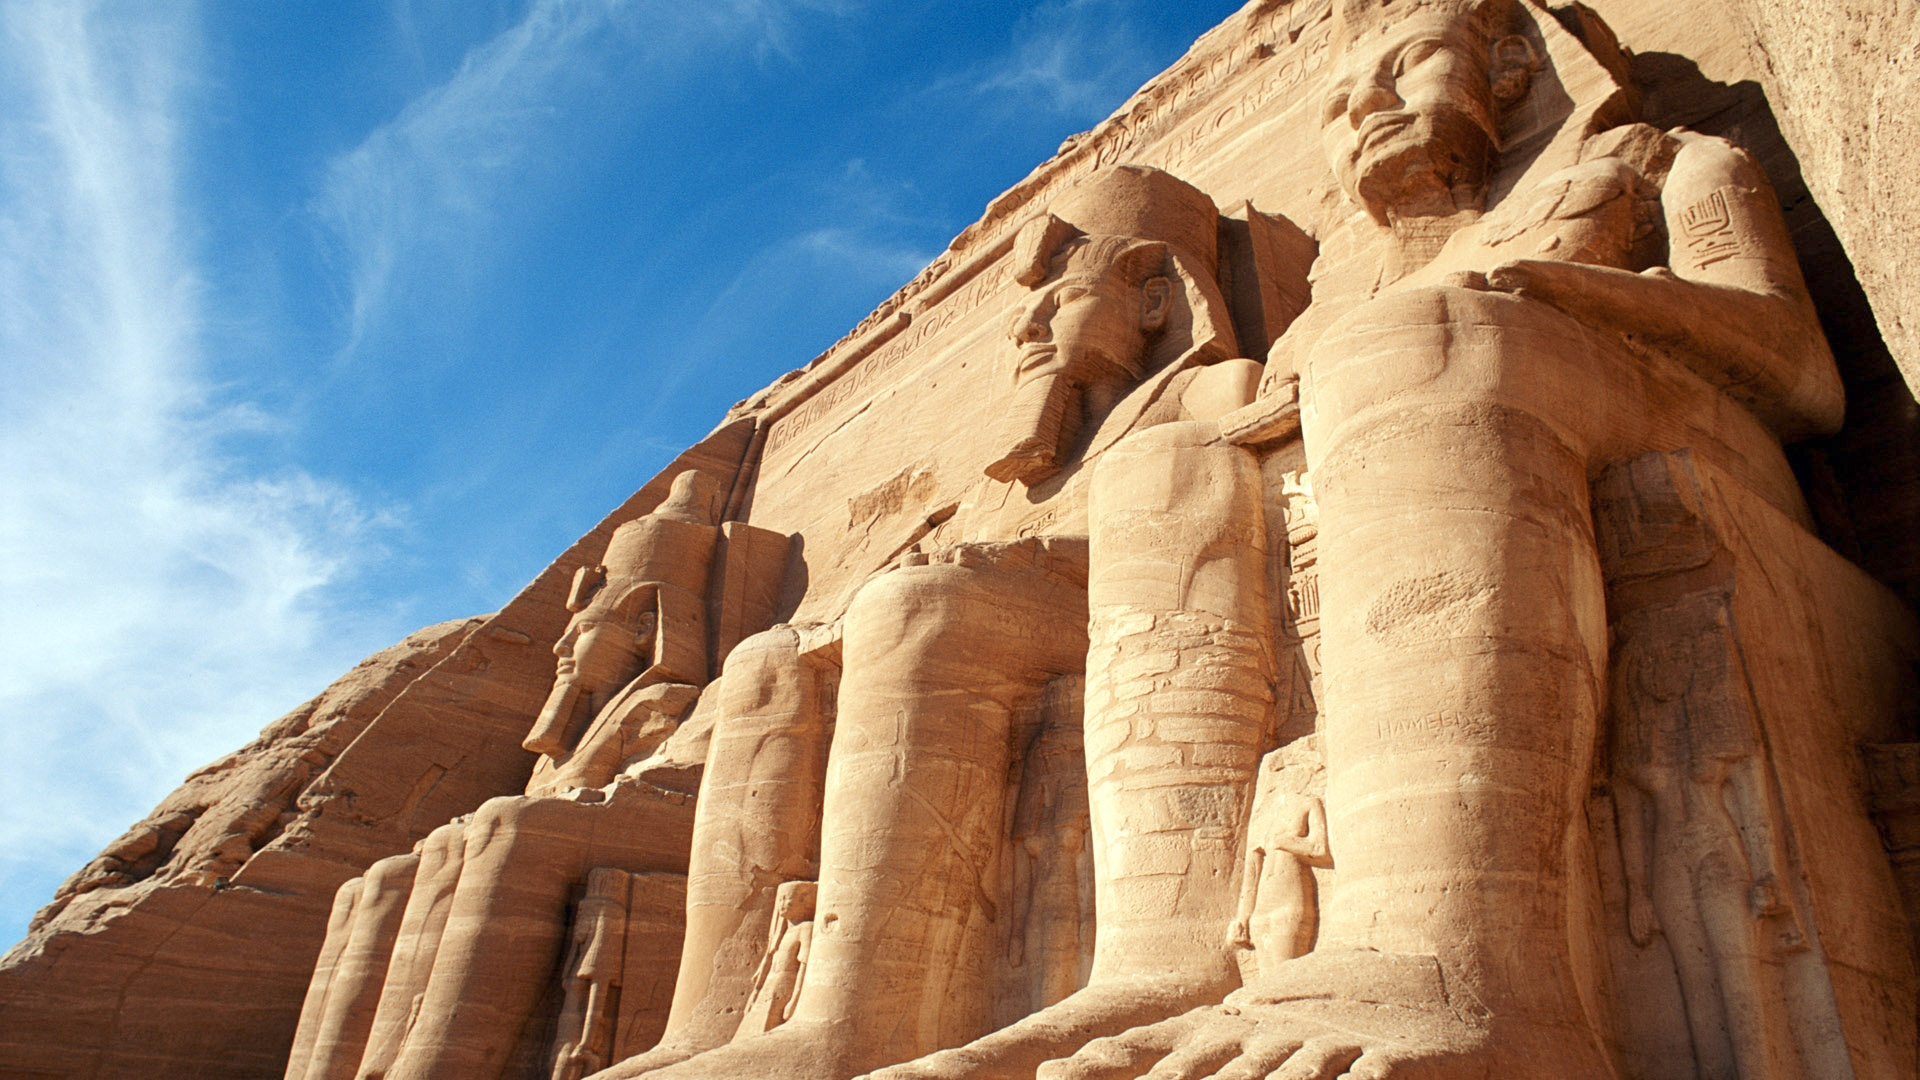 Abu-Simbel-Temples-Egypt-1920x1080-Need-iPhone-S-Plus-Background-for-IPhoneSPlu-wallpaper-wp3402160